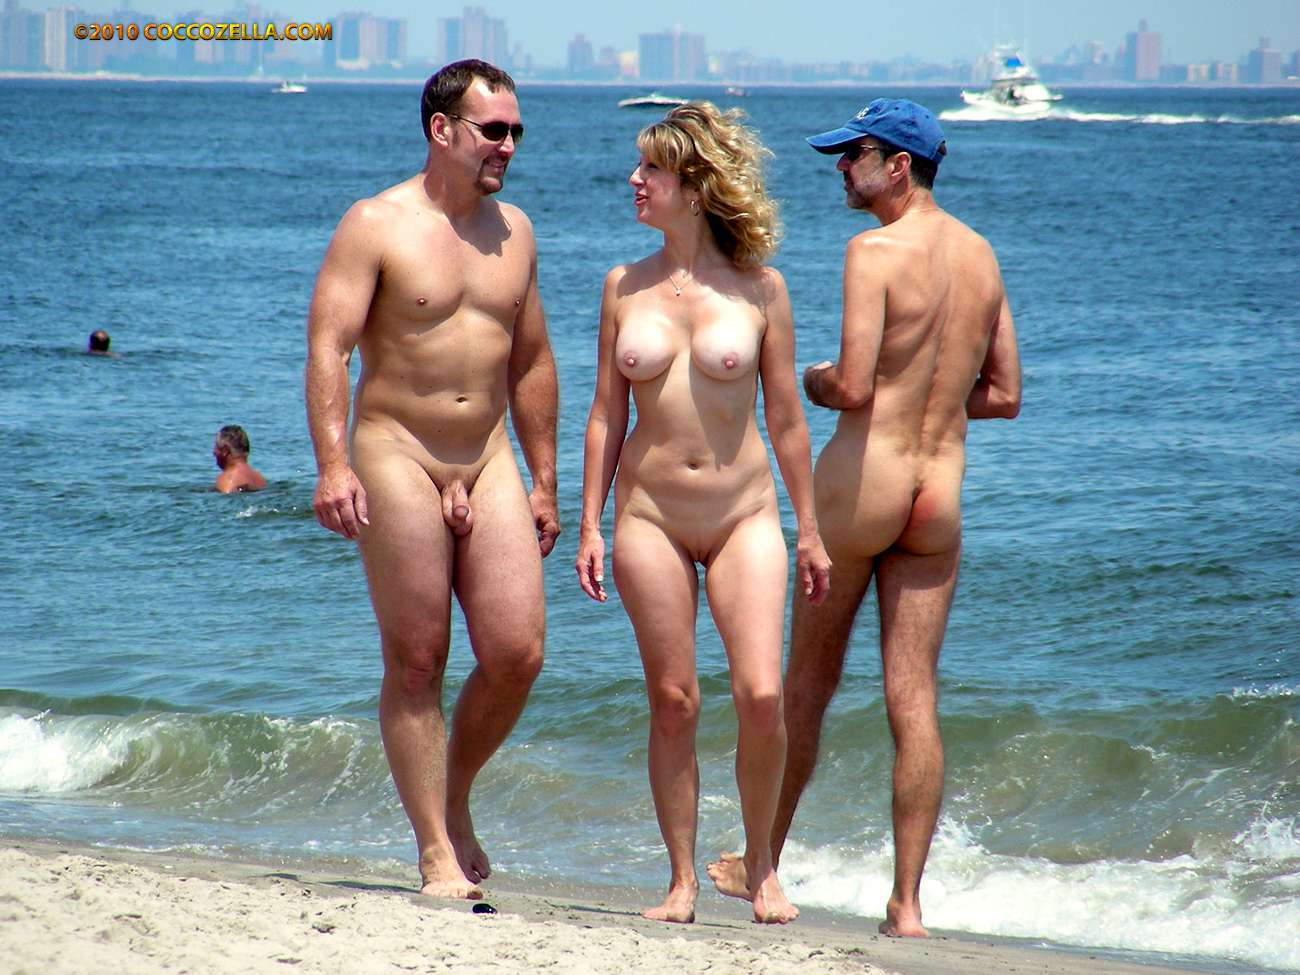 Lang nudist group